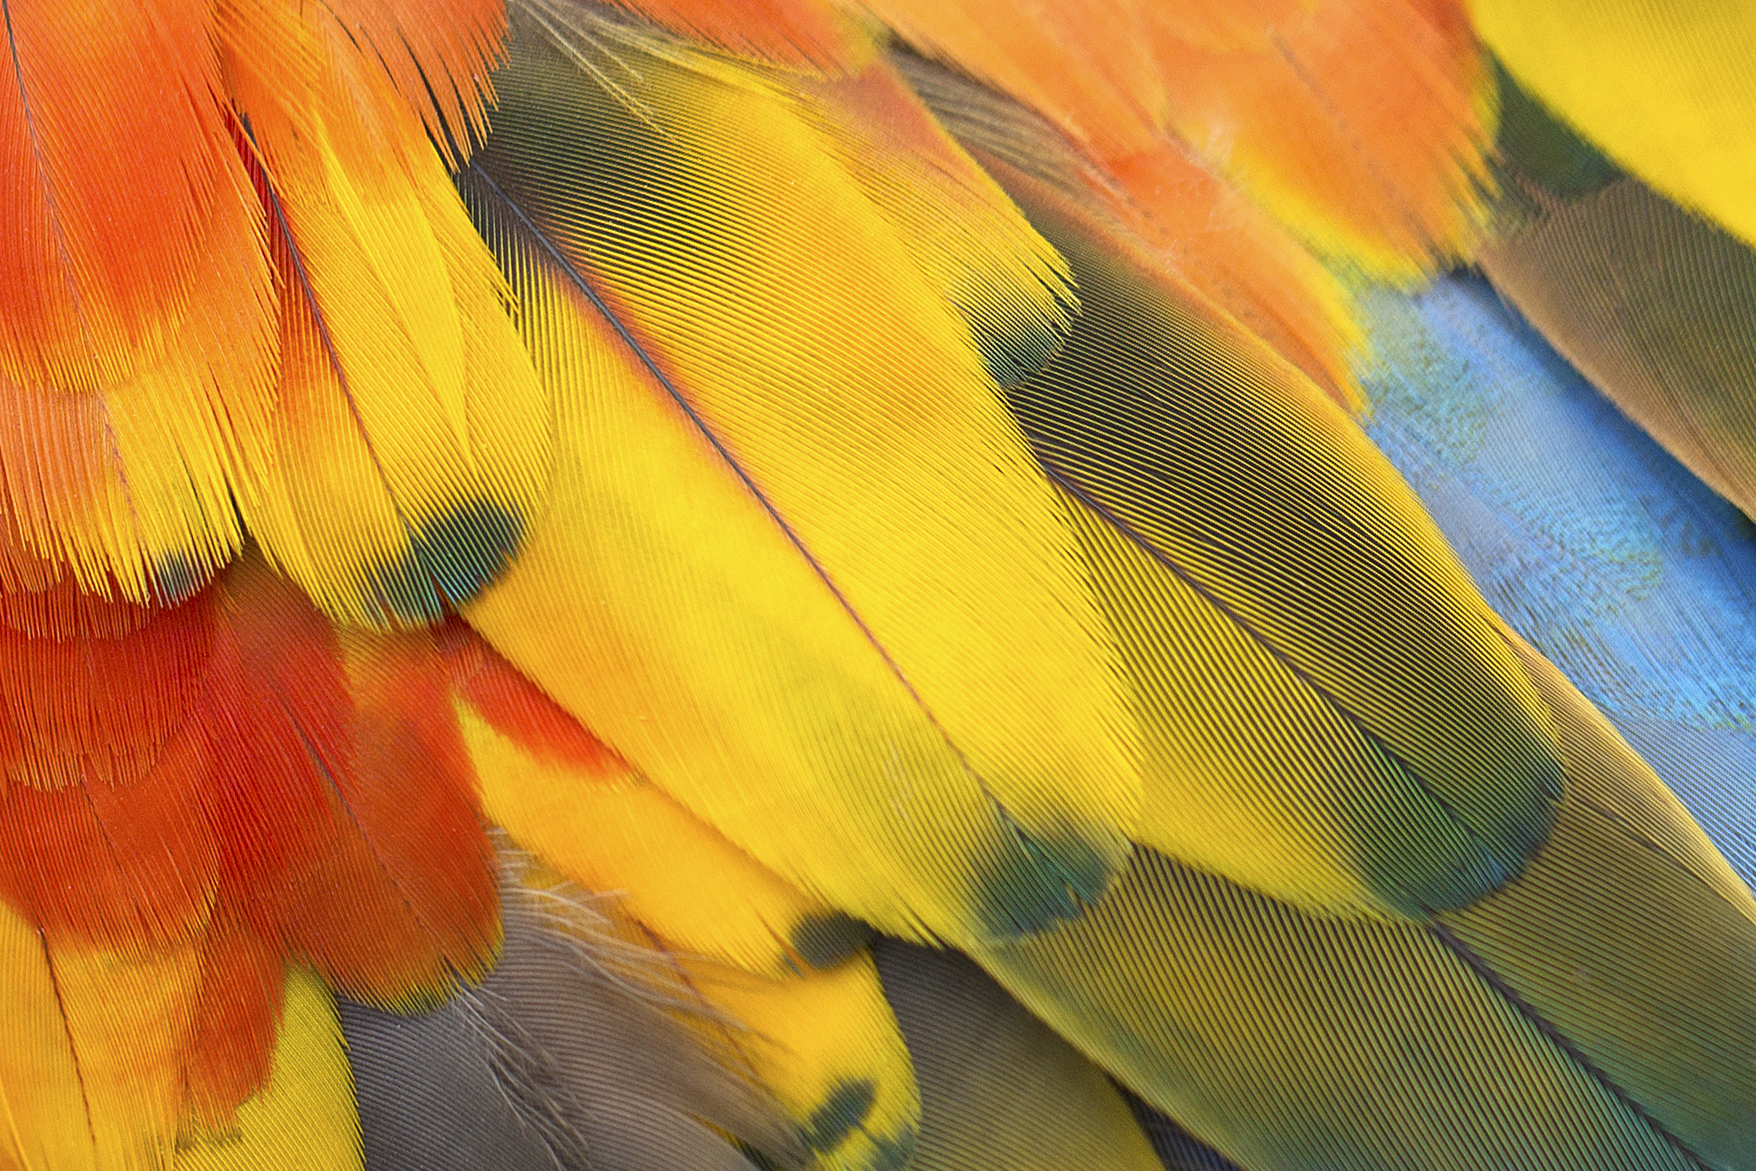 Parrot feathers - photo#23